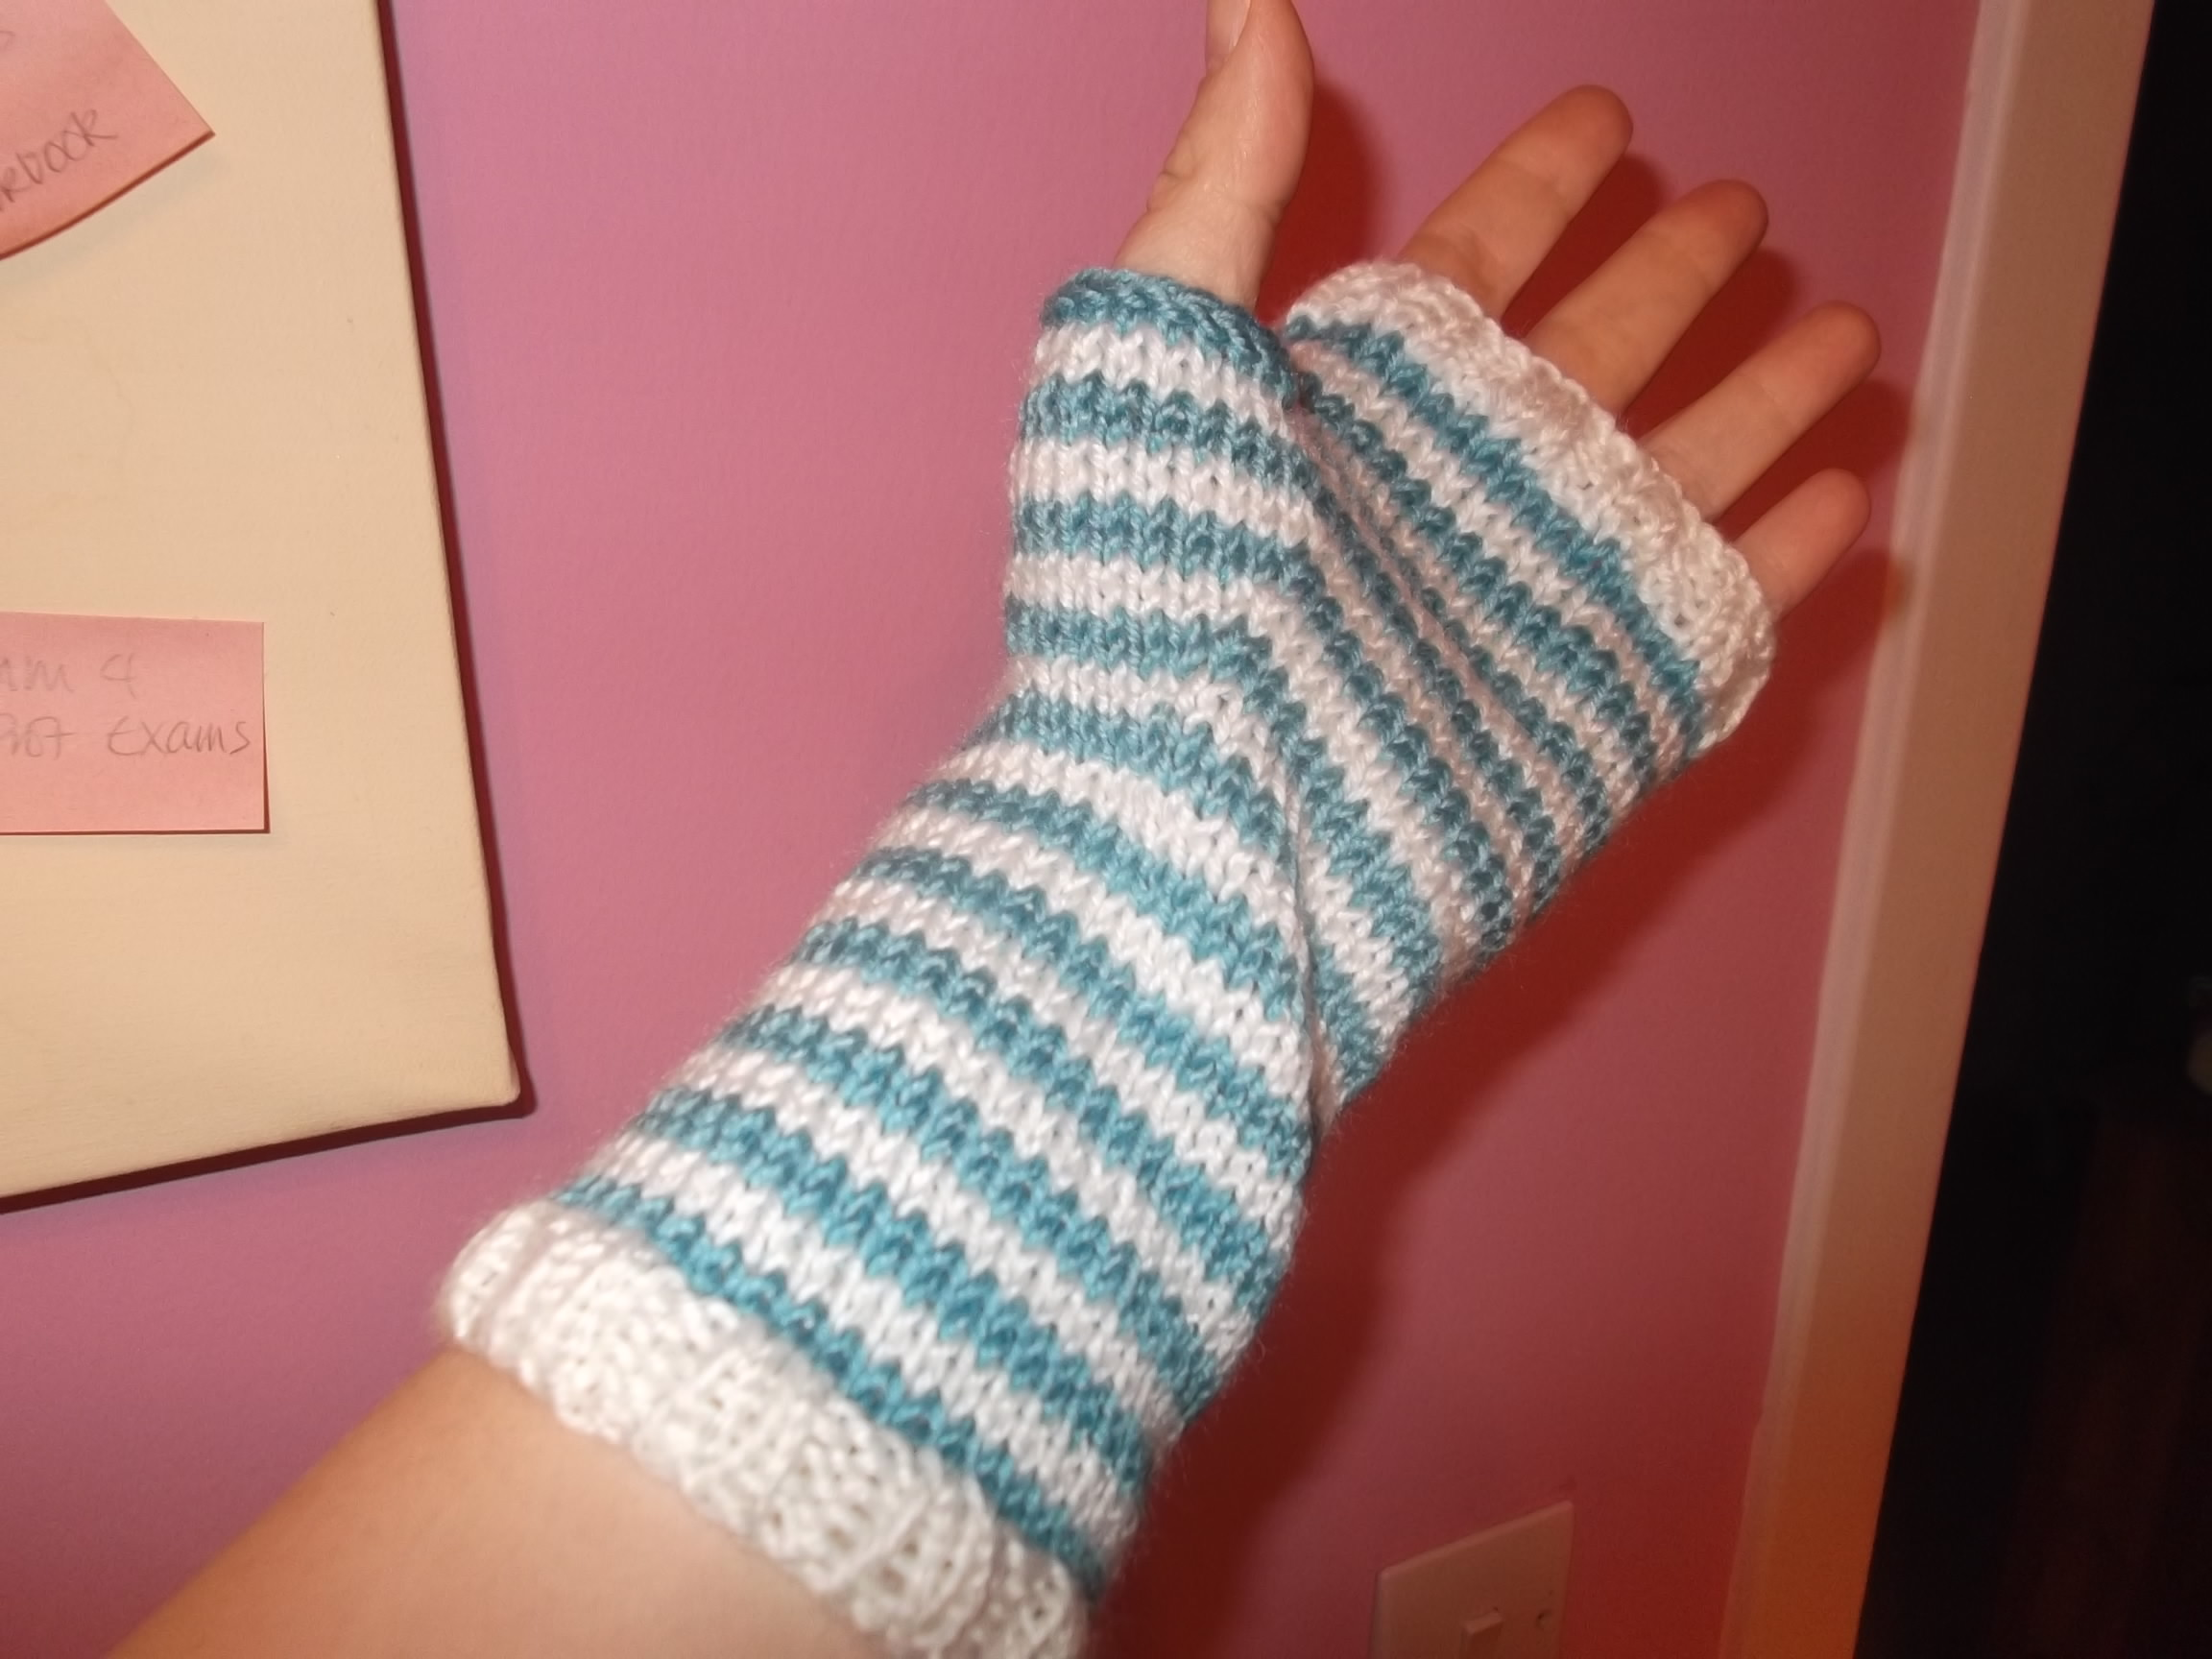 Knit Fingerless Gloves Pattern Straight Needles : Fingerless Gloves - Stashbusting project - Mortgage Free in Three